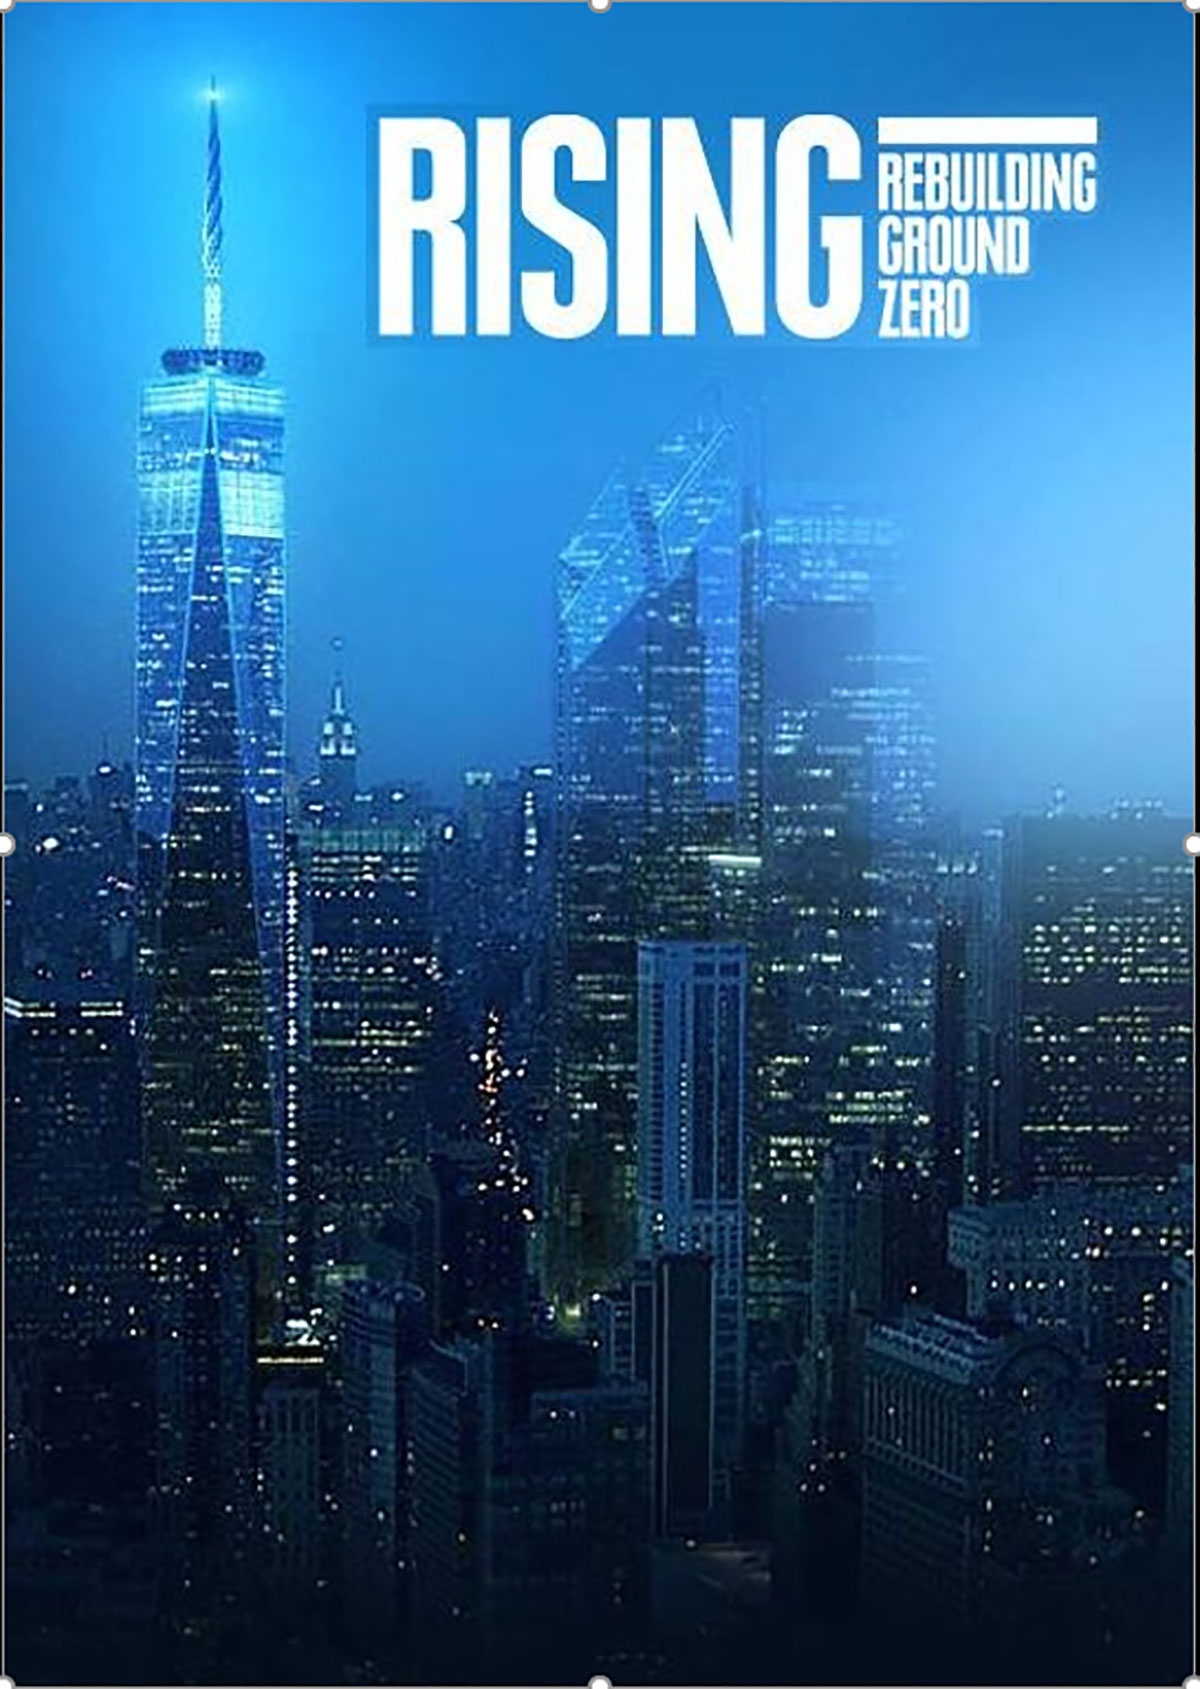 Poster for the Rising: Rebuilding Ground Zero documentary Co-produced by Danny Forster and Steven Spielberg about the rebuilding of the World Trade Center site in the wake of 9/11.